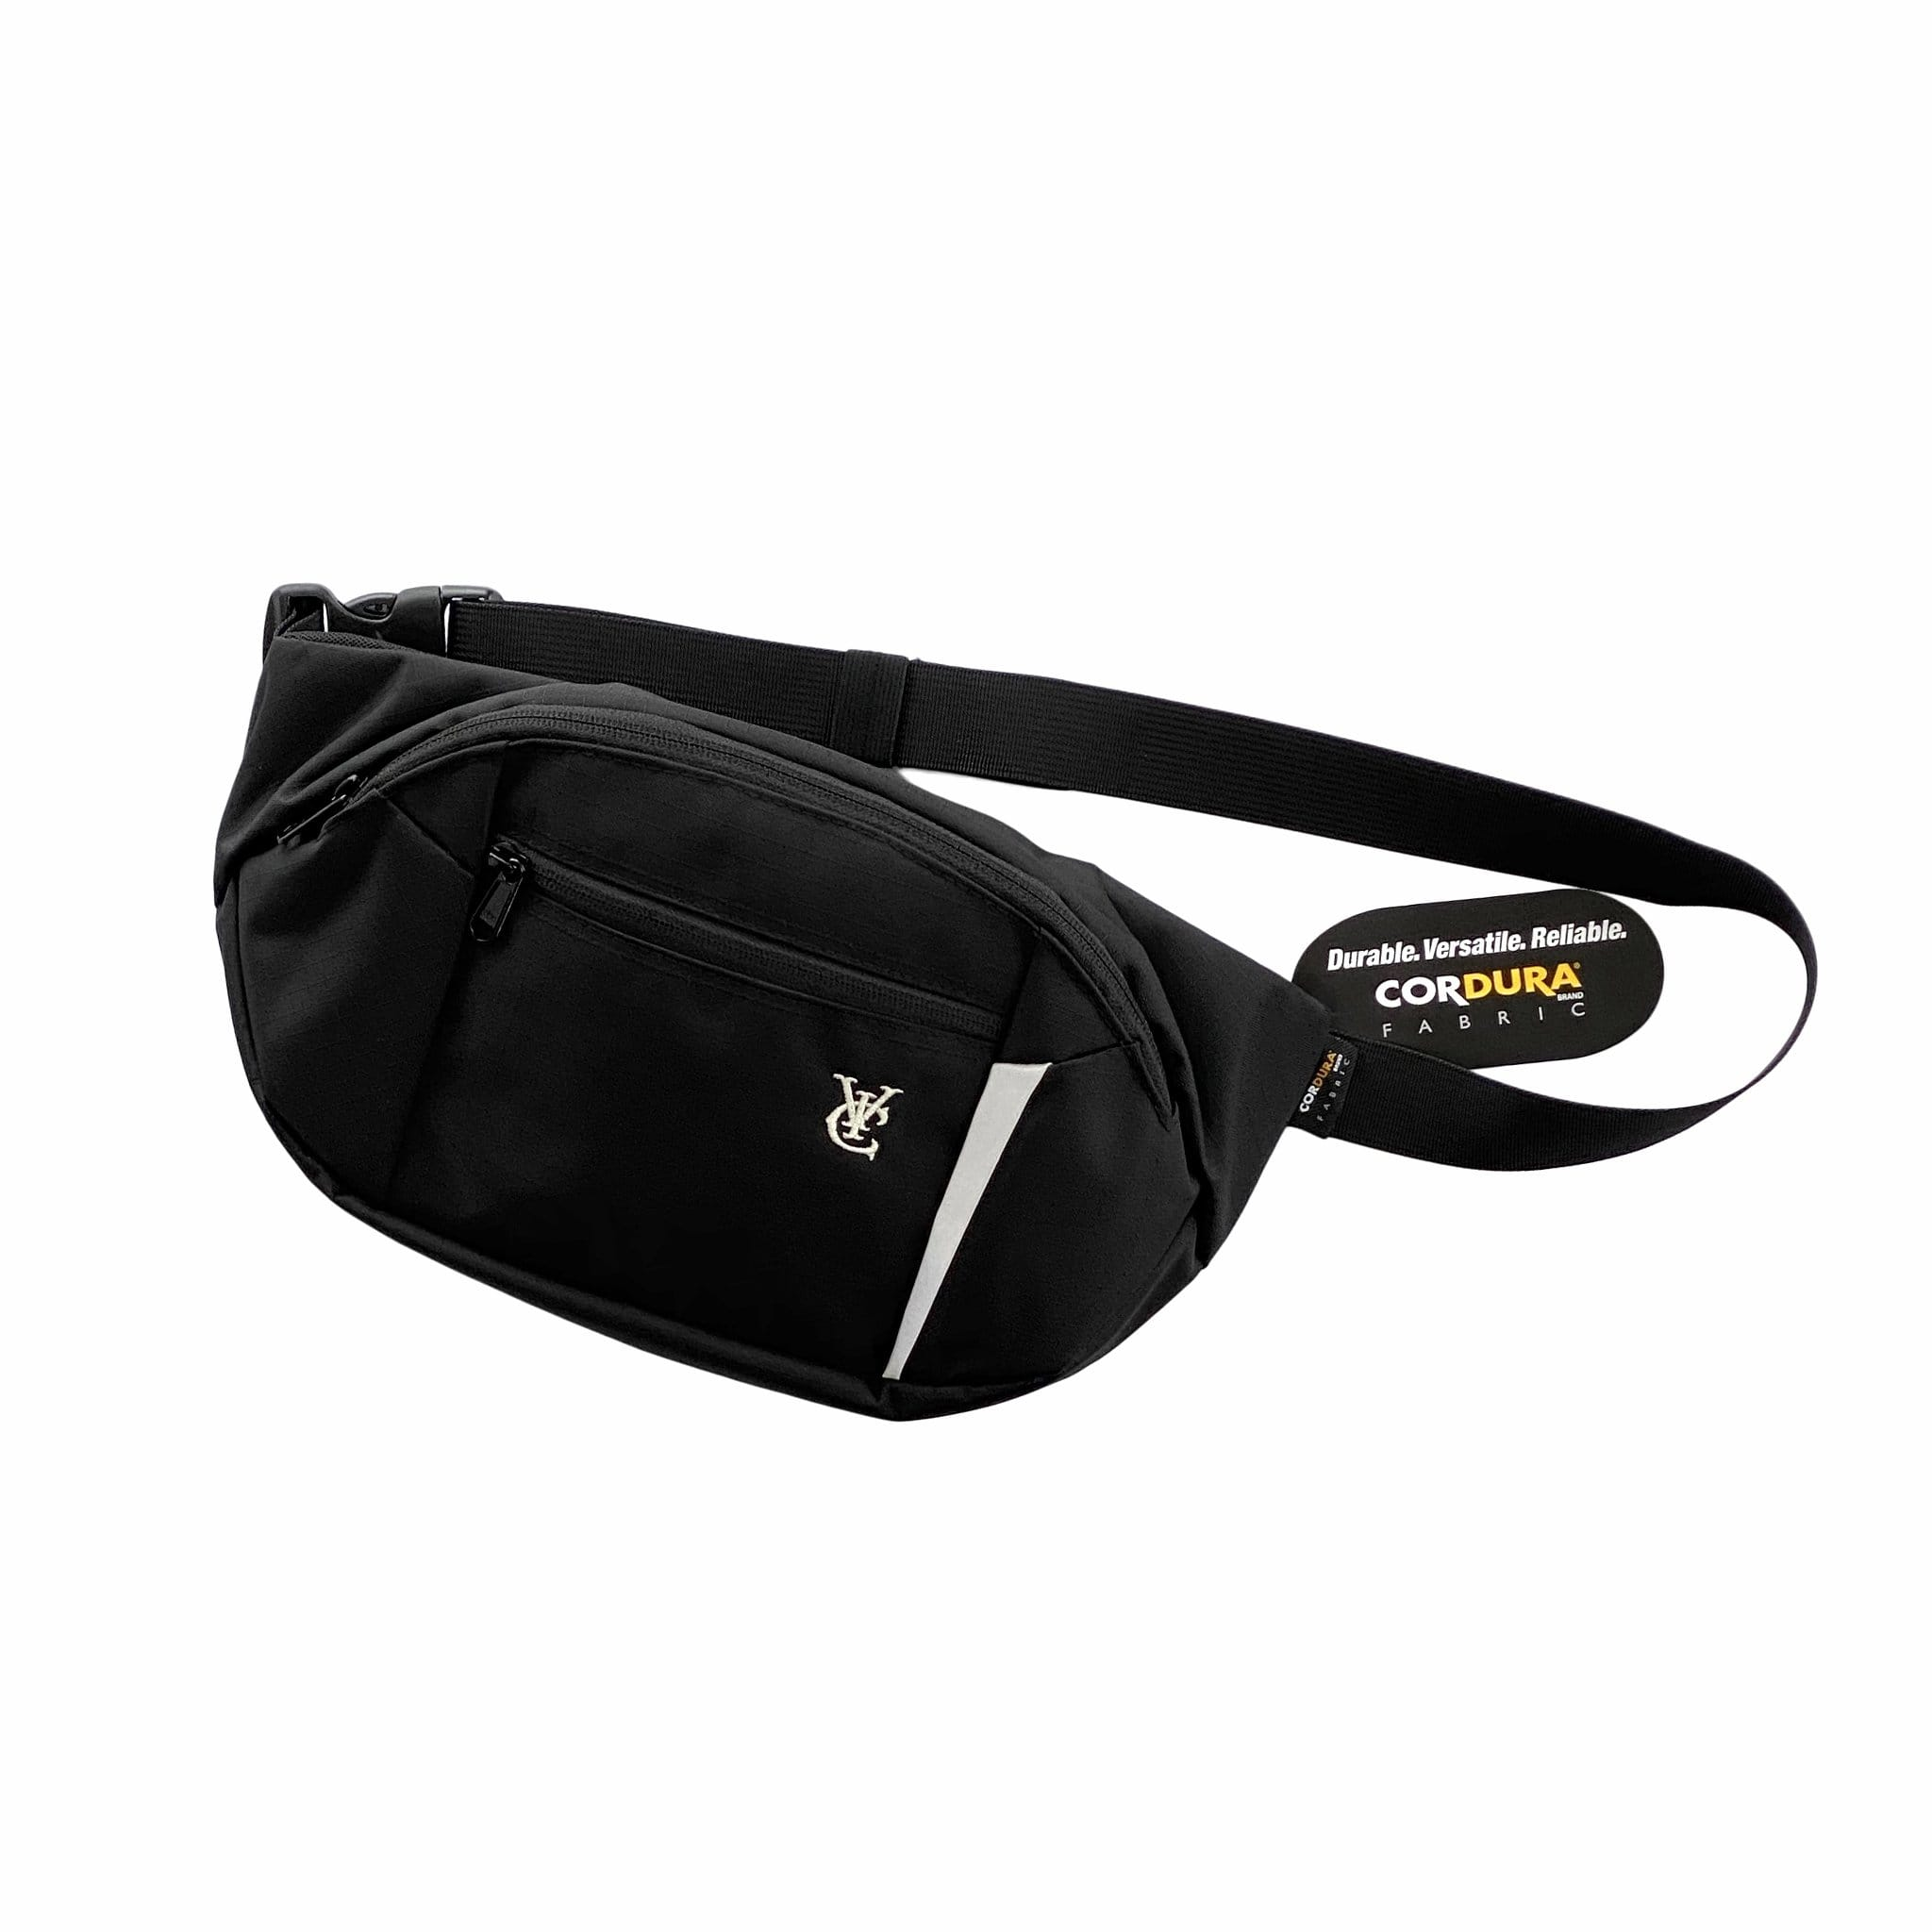 CORDURA® Nylon ripstop fabric / 35 x 17 x 5.5 cm, 3 litres / Reflective detailing / Air mesh padded back panel / Large front compartment with YKK zip closure / 2 main pockets with YKK zippered closure / Internal mesh constructed pocket with zip closure / Embroidery logo